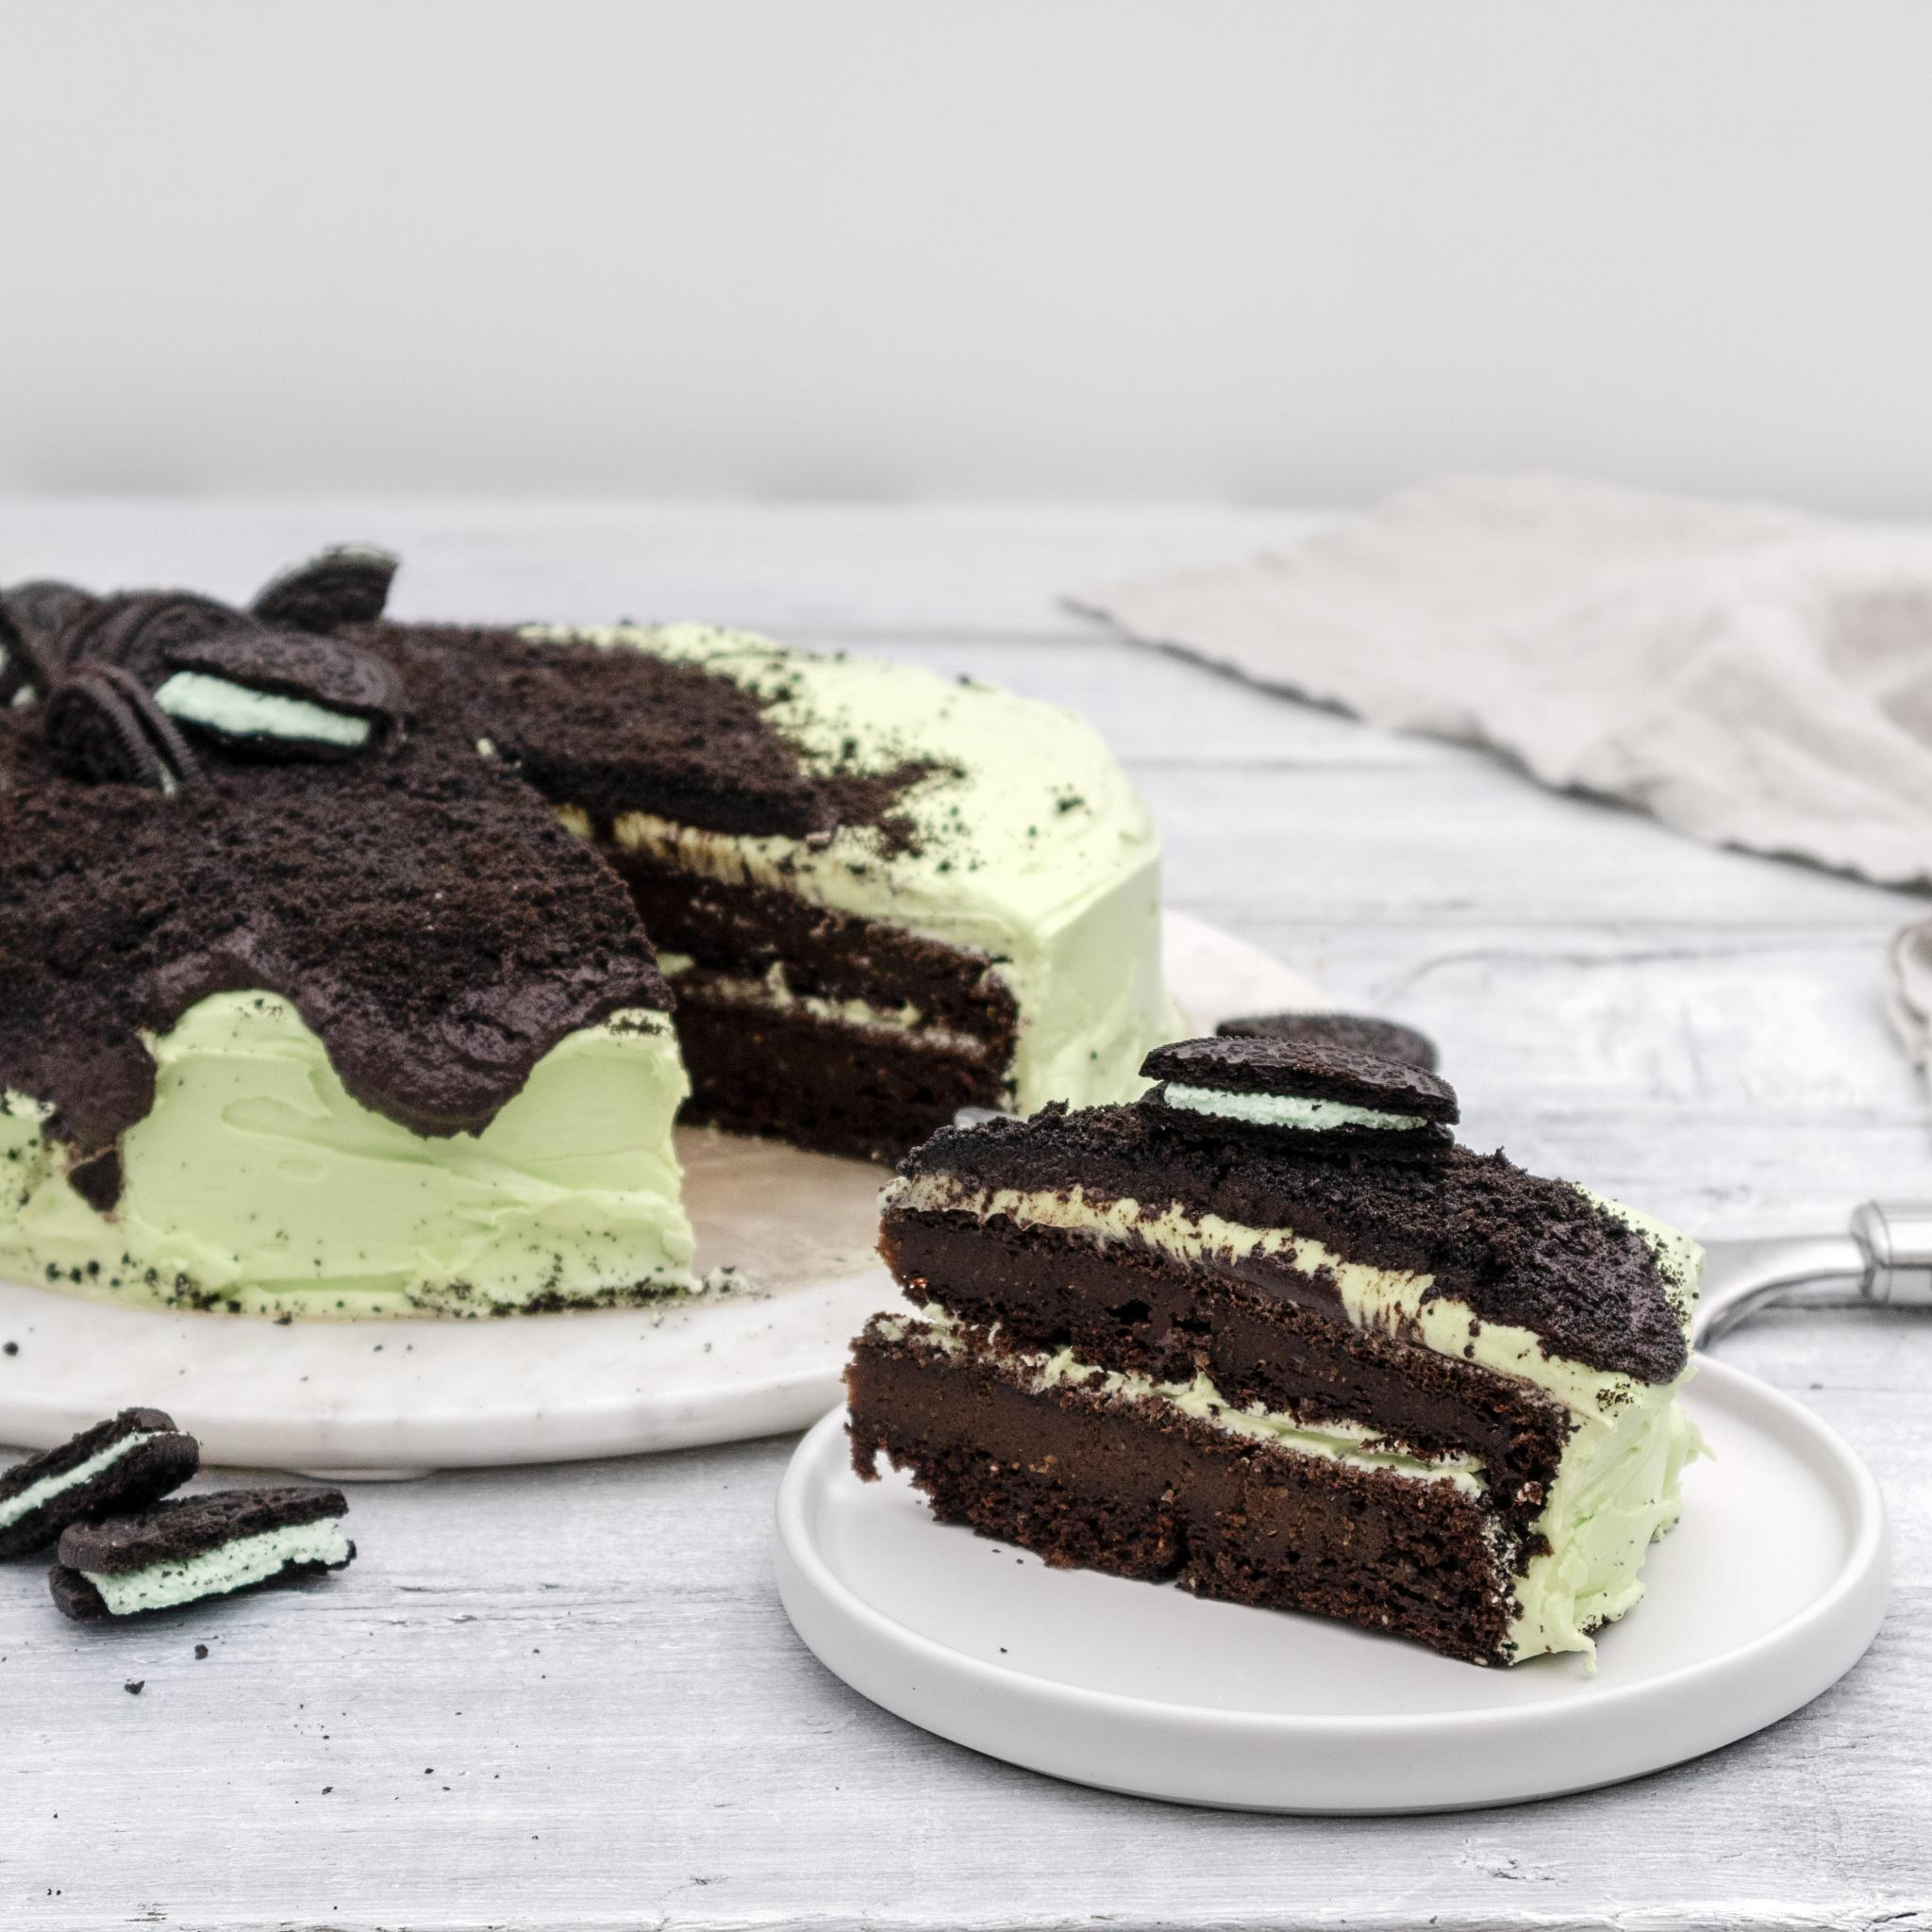 Vegan Chocolate Mint Oreo Cake Recipe